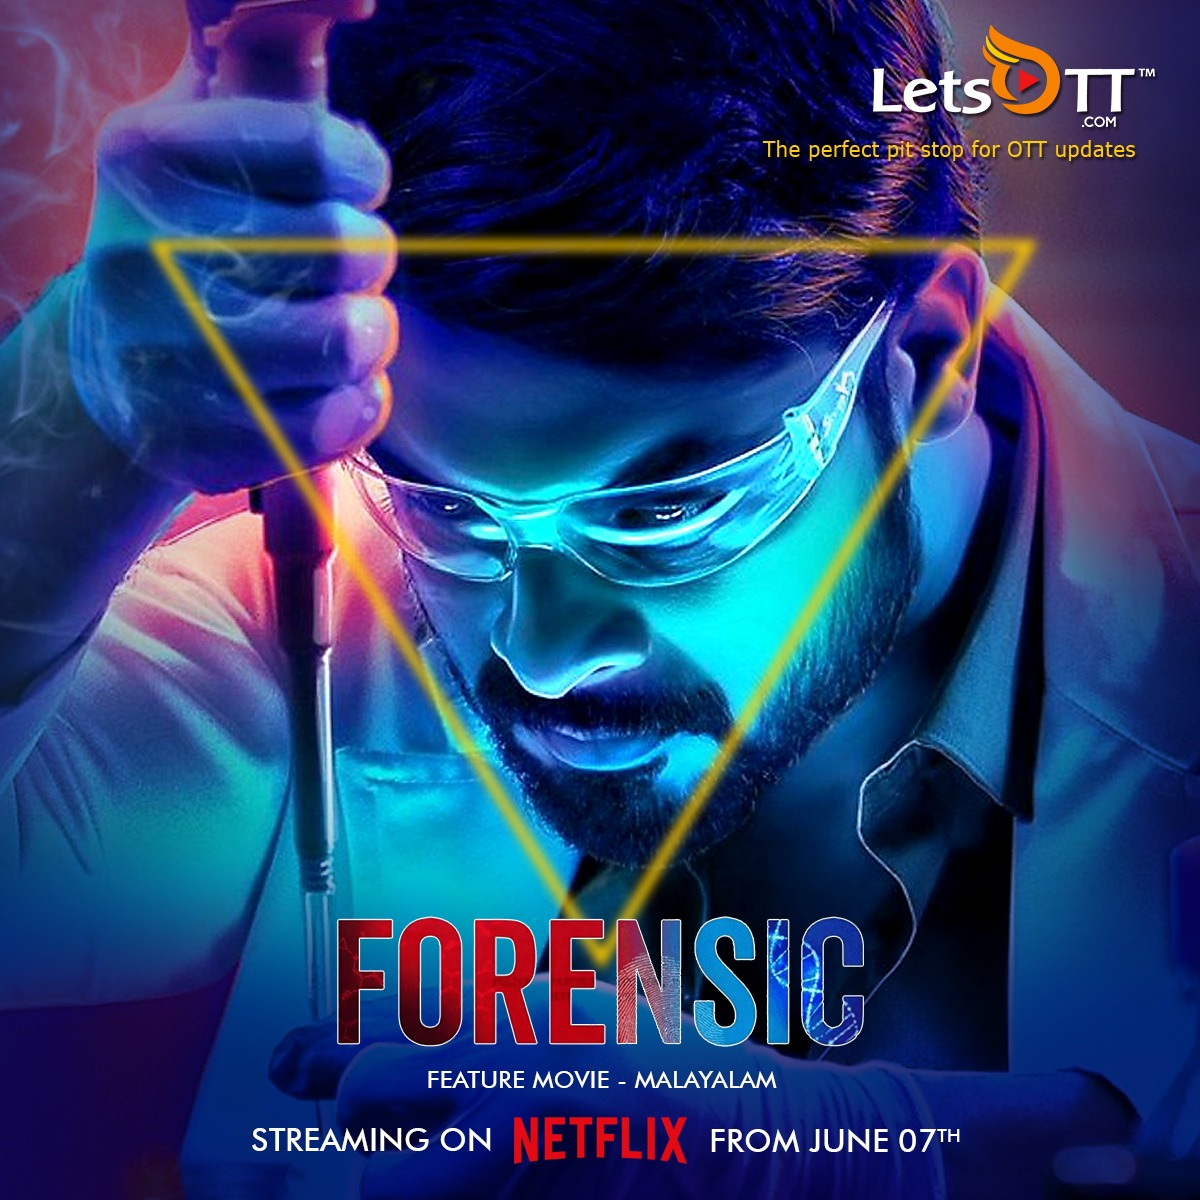 Letsott Global On Twitter Streaming Alert Malayalam Thriller Forensic 2020 Now Streaming On Netflix Https T Co Rb1cw3bwv4